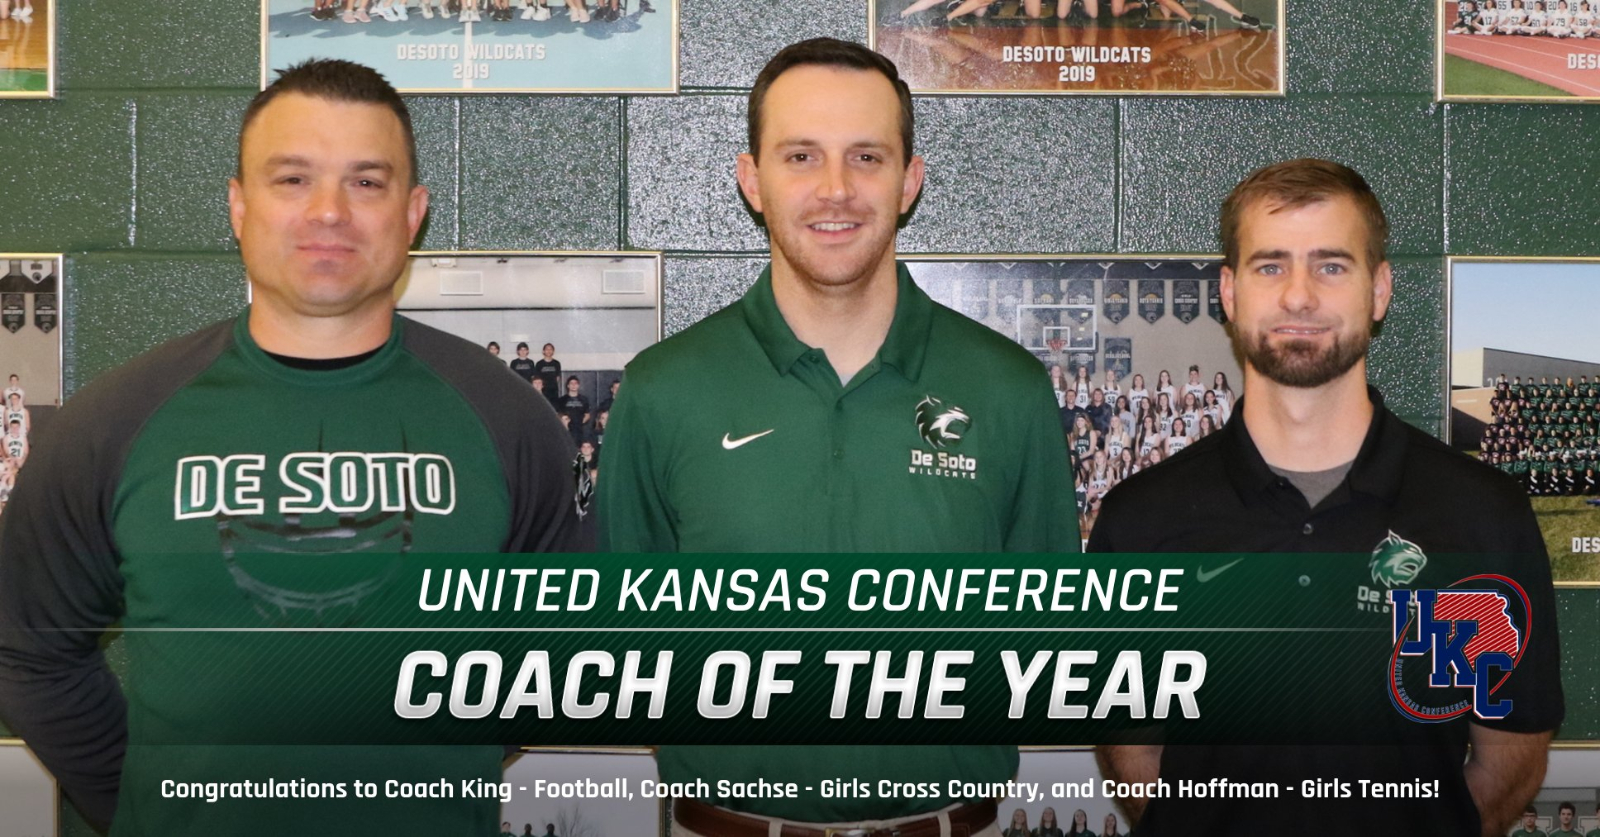 UKC Coaches of the Year